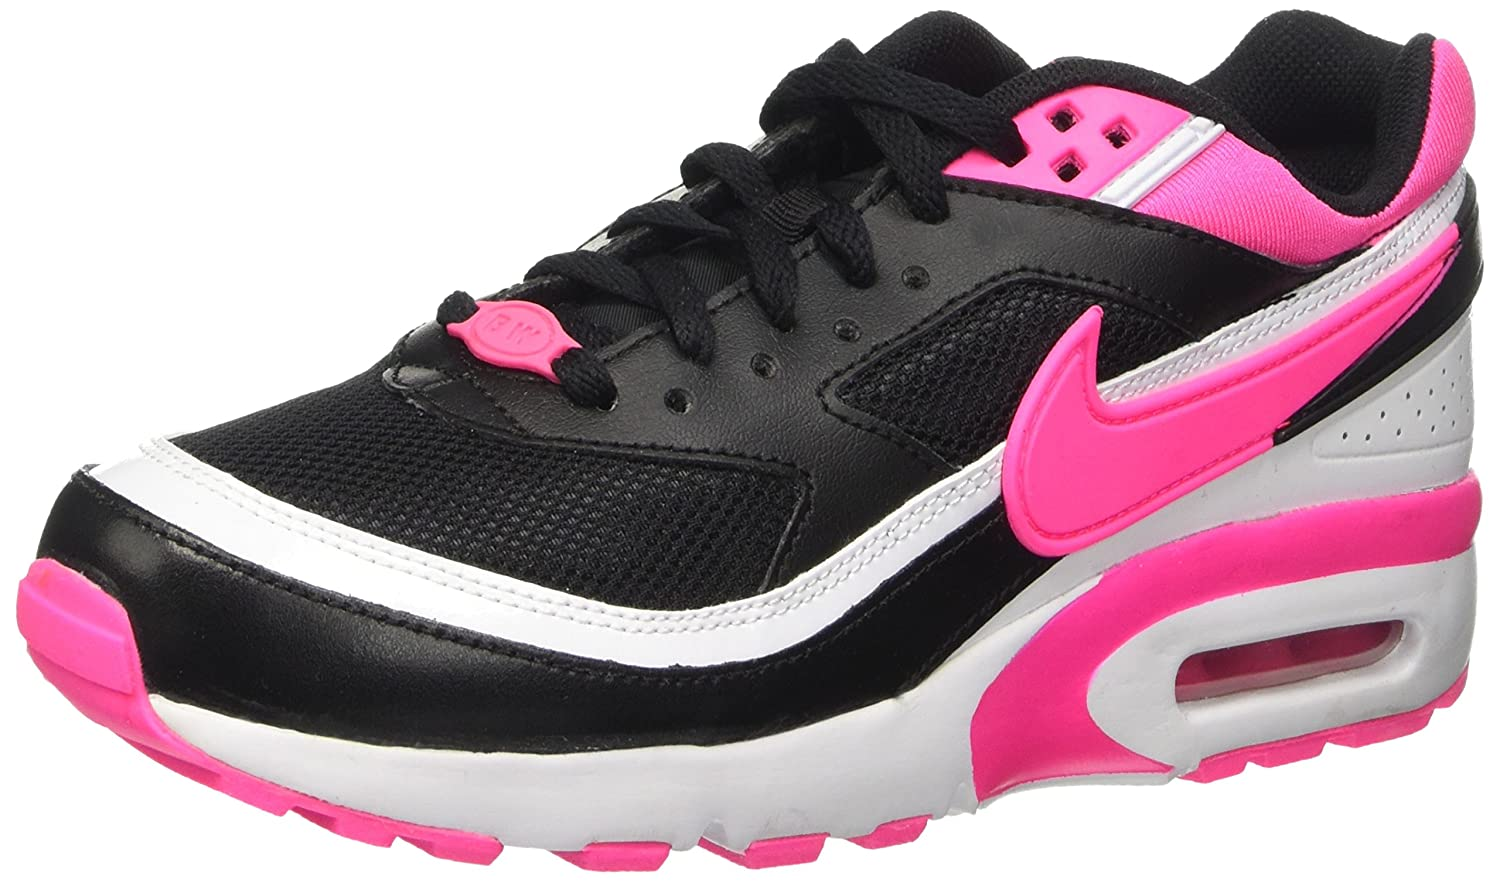 san francisco edea2 e3b99 Amazon.com  Nike Air Max BW (GS) Girls Sneaker  Fashion Snea